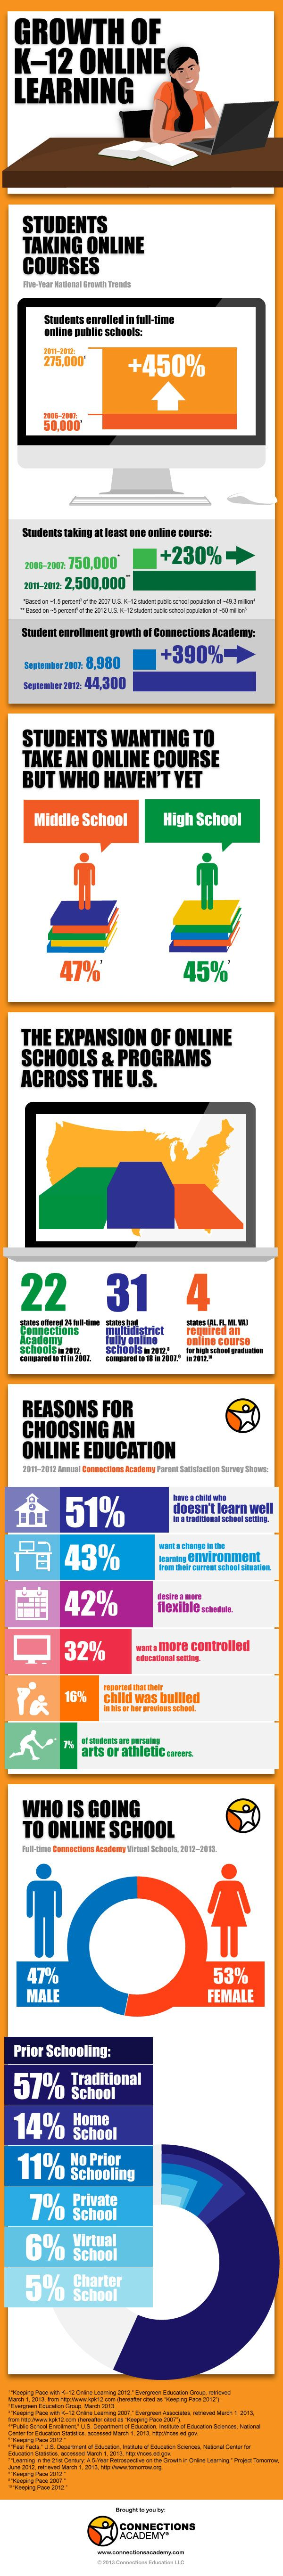 Growth of K-12 Online Learning in the U.S. and at Connections Academy #infographic #virtualschool